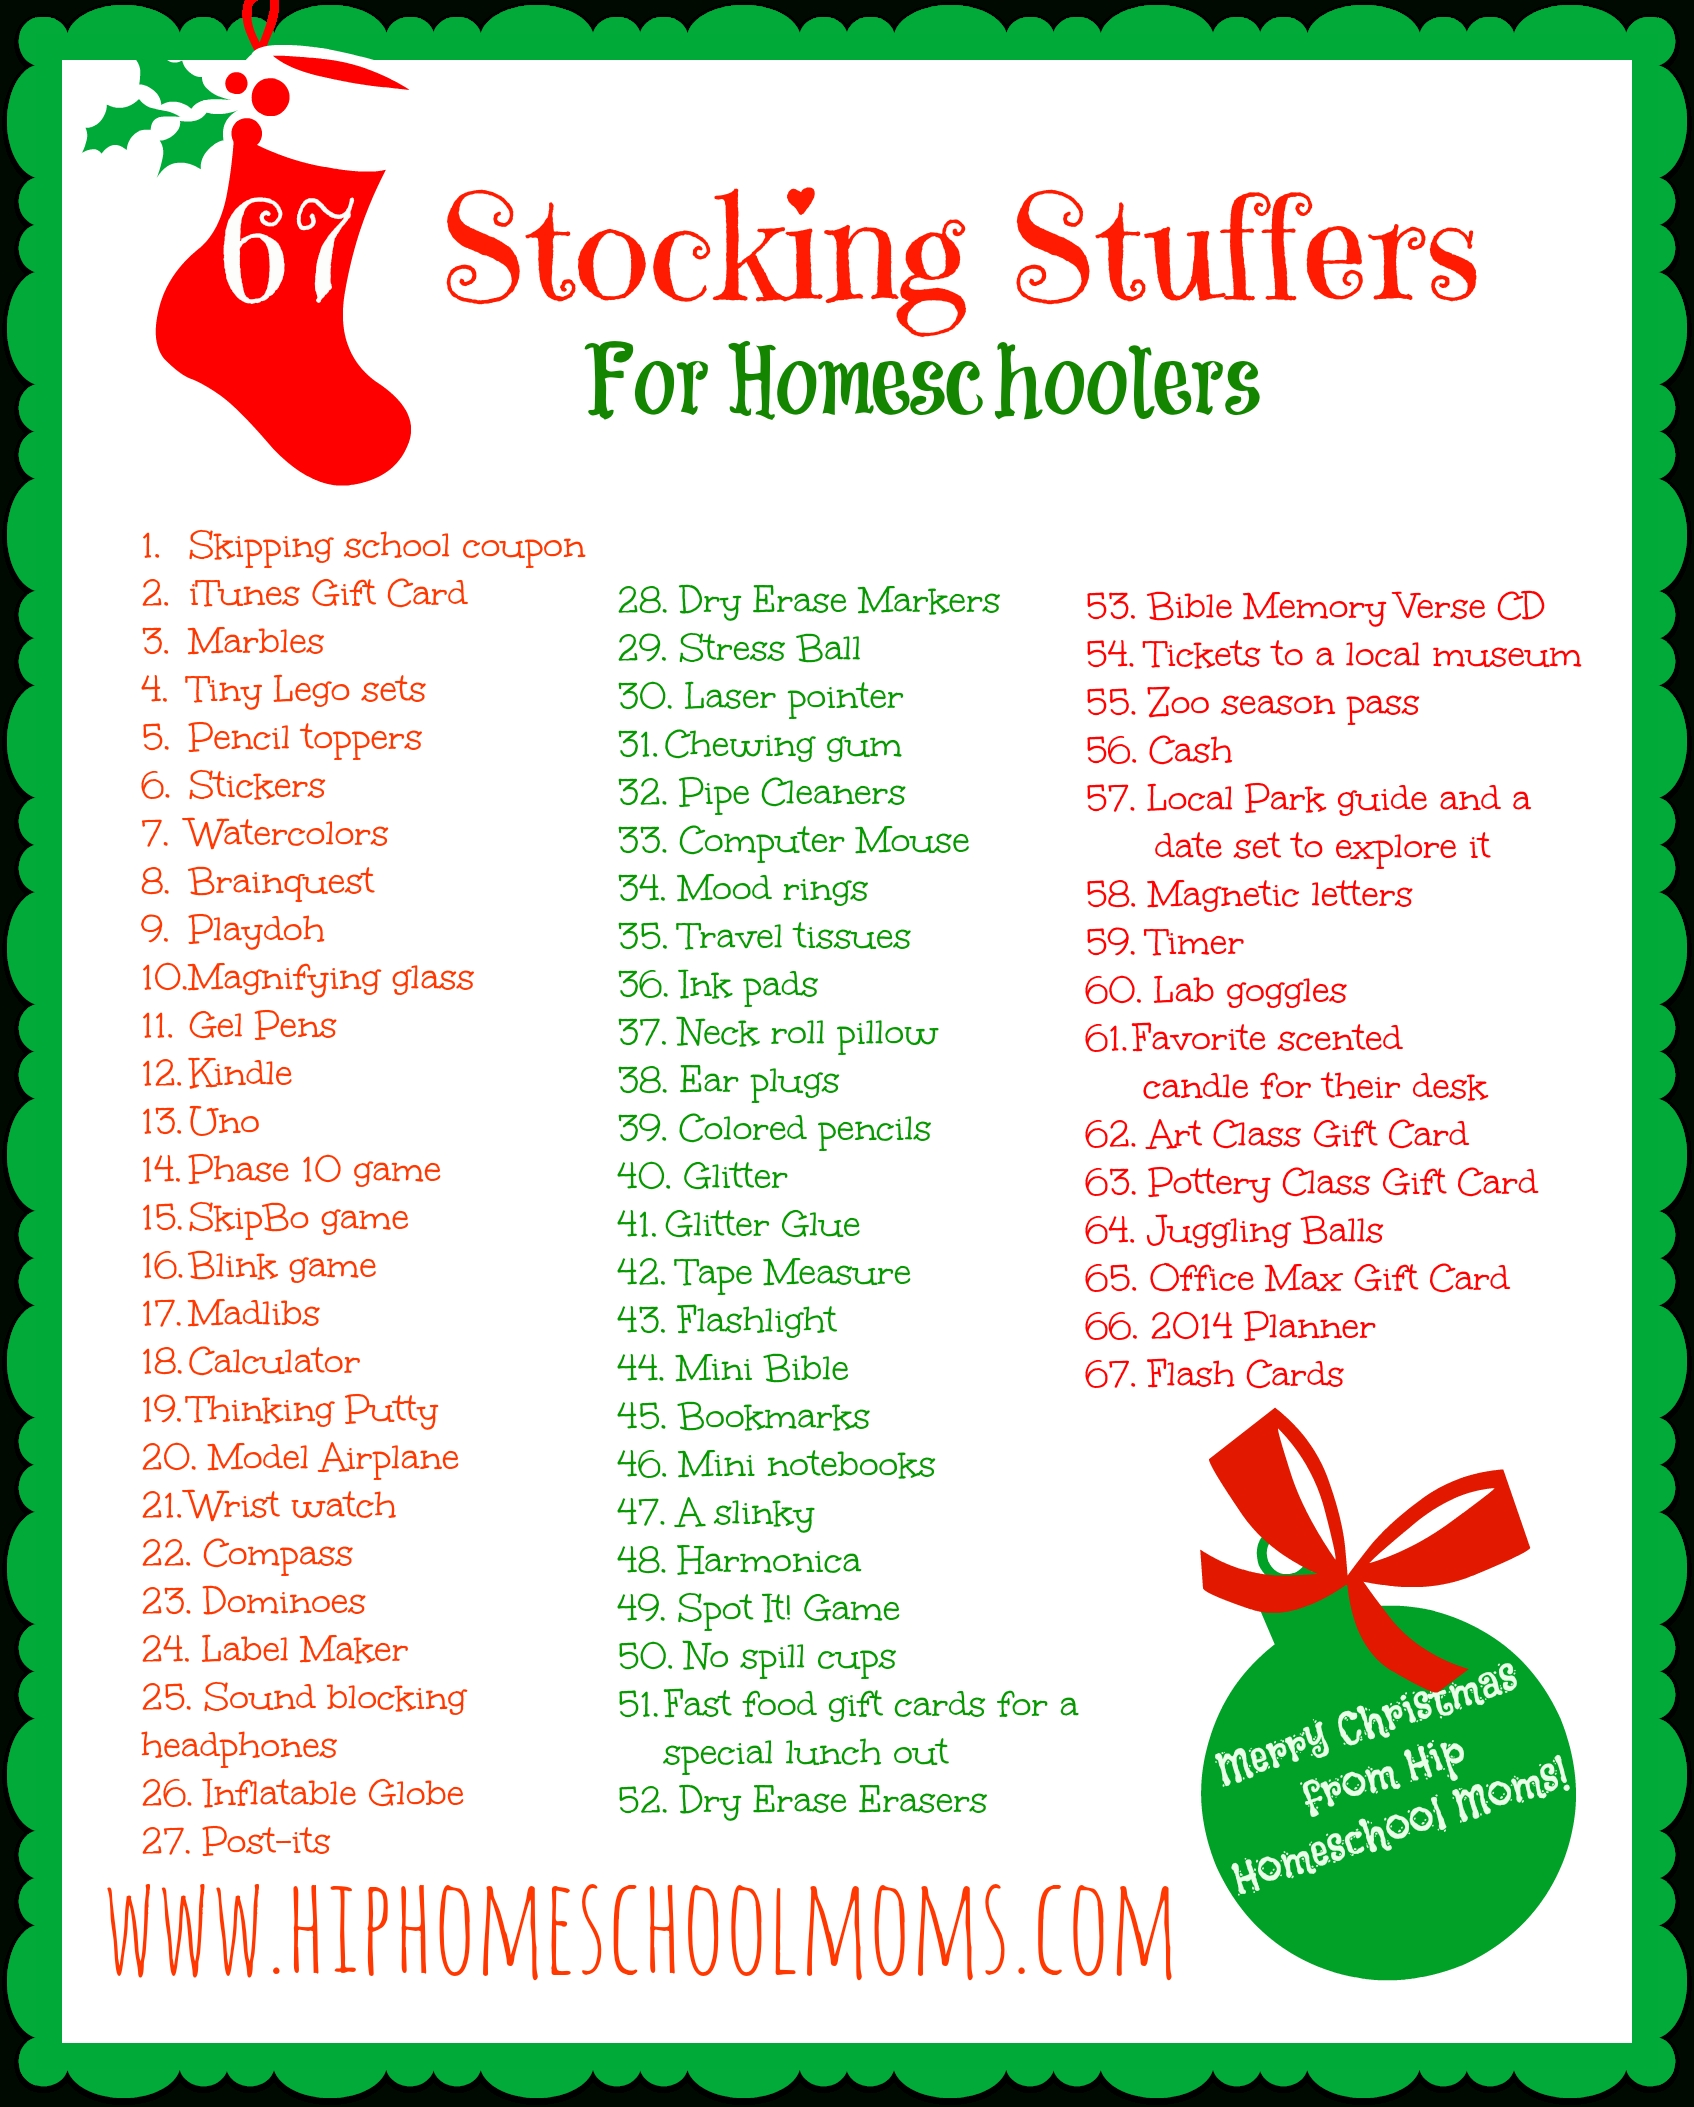 printable homeschool stocking stuffer ideas | hip homeschool moms